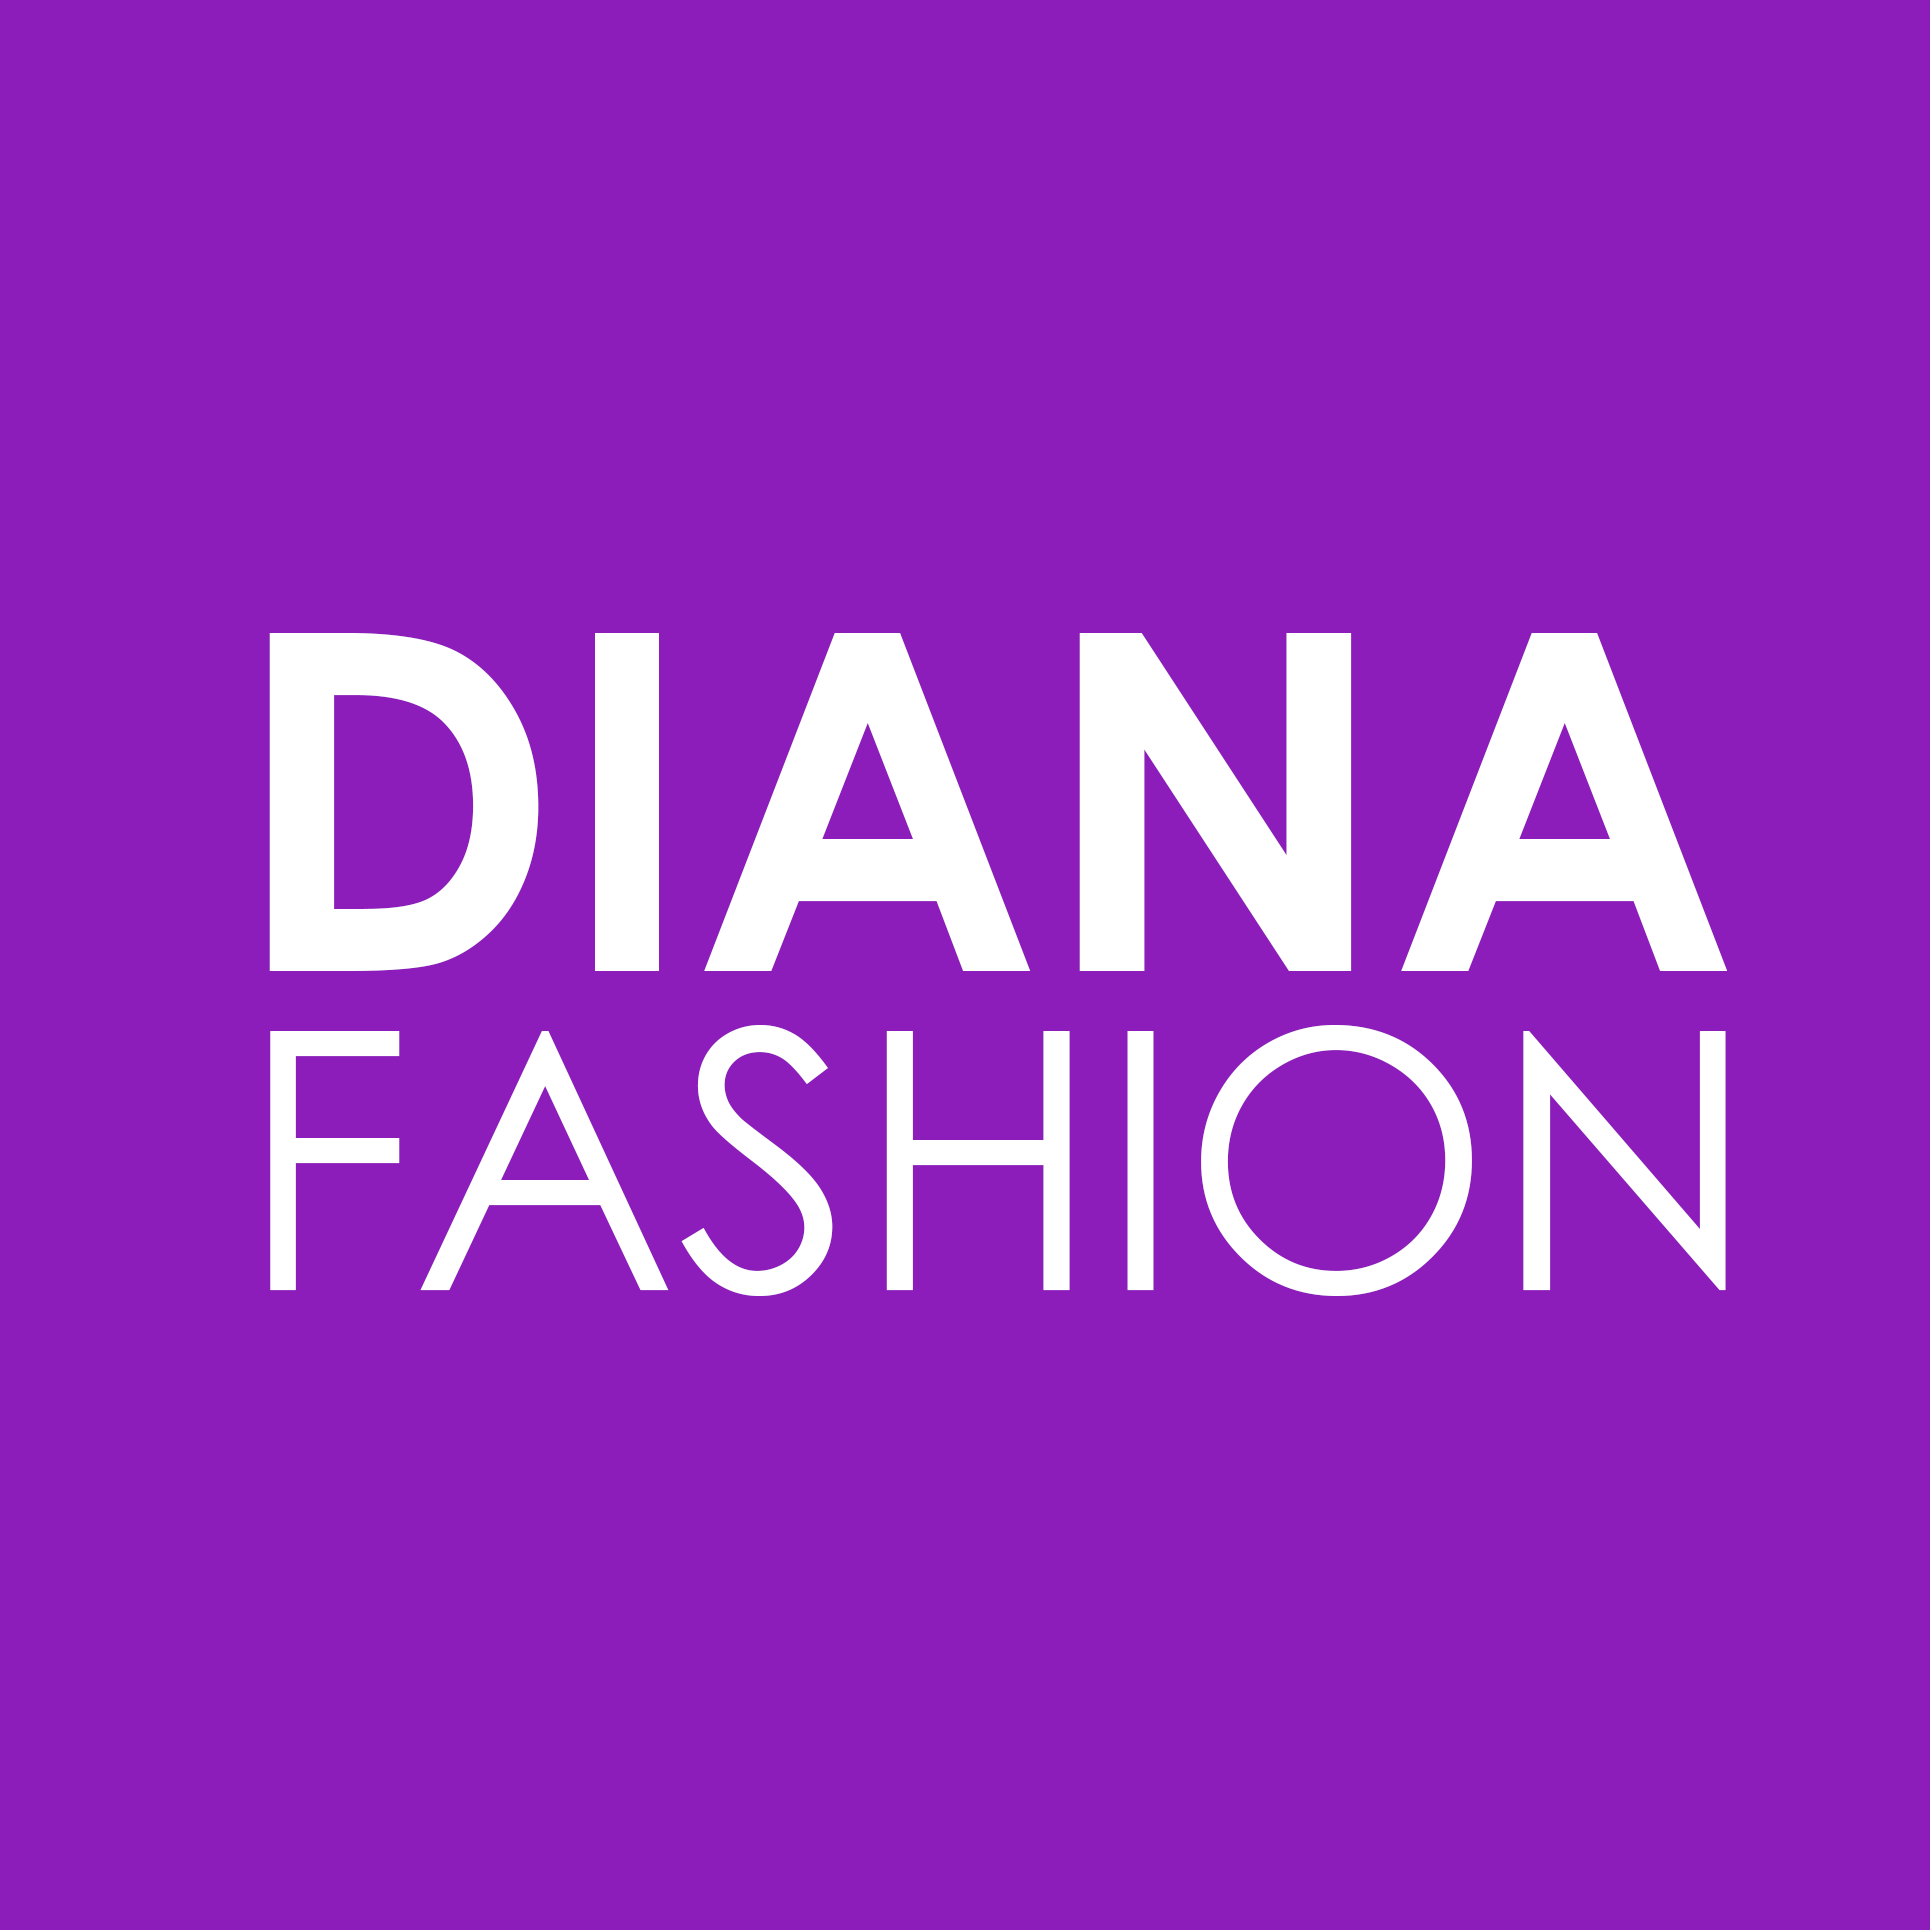 Diana Fashion